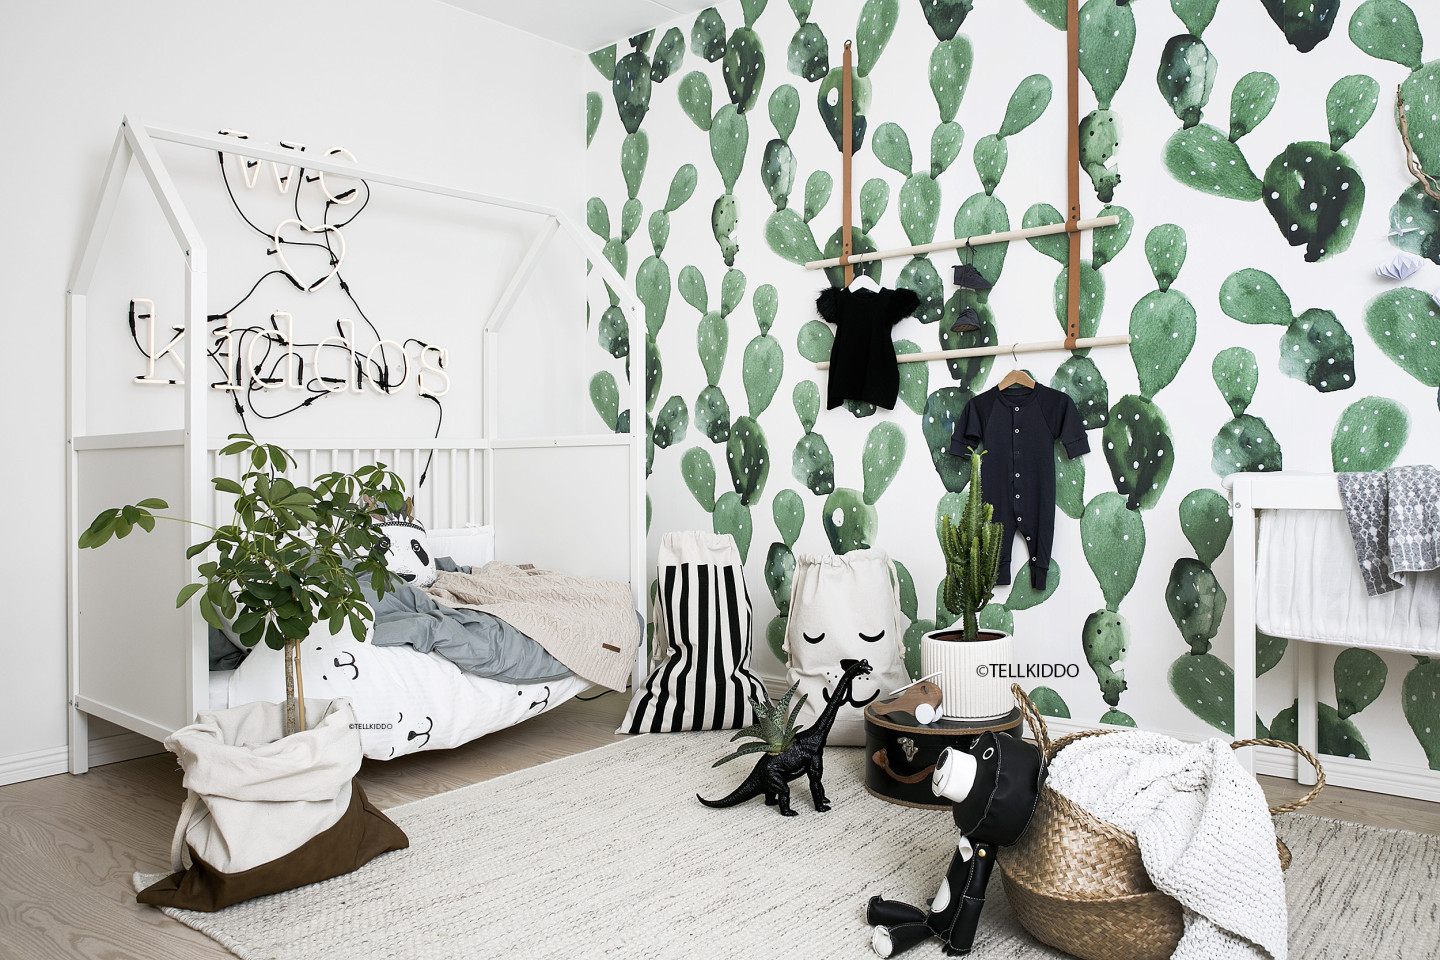 Tellkiddo Black and White Nursery featuring Cactus Wallpaper